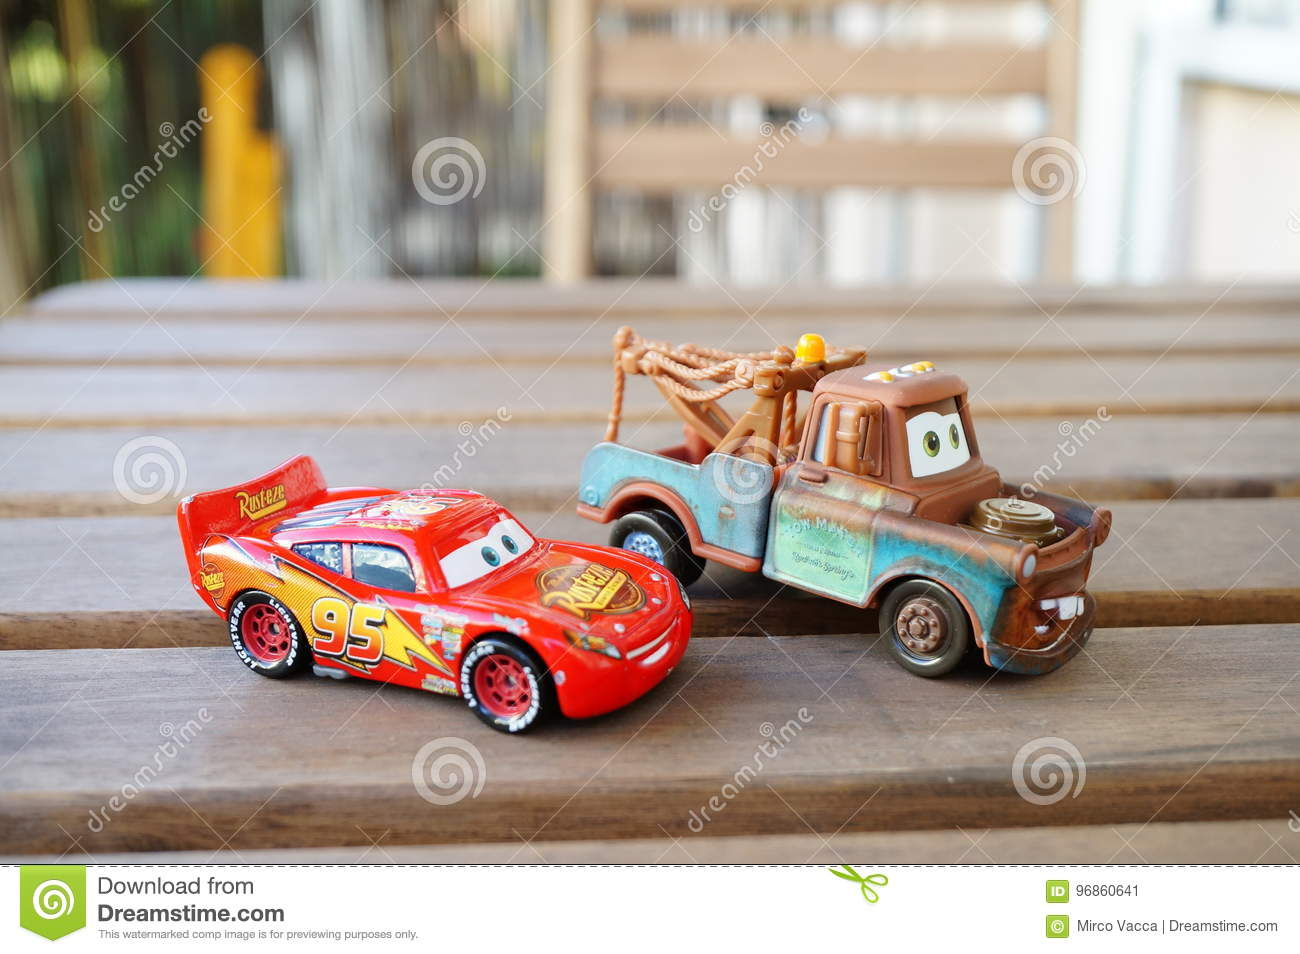 disney cars toys editorial